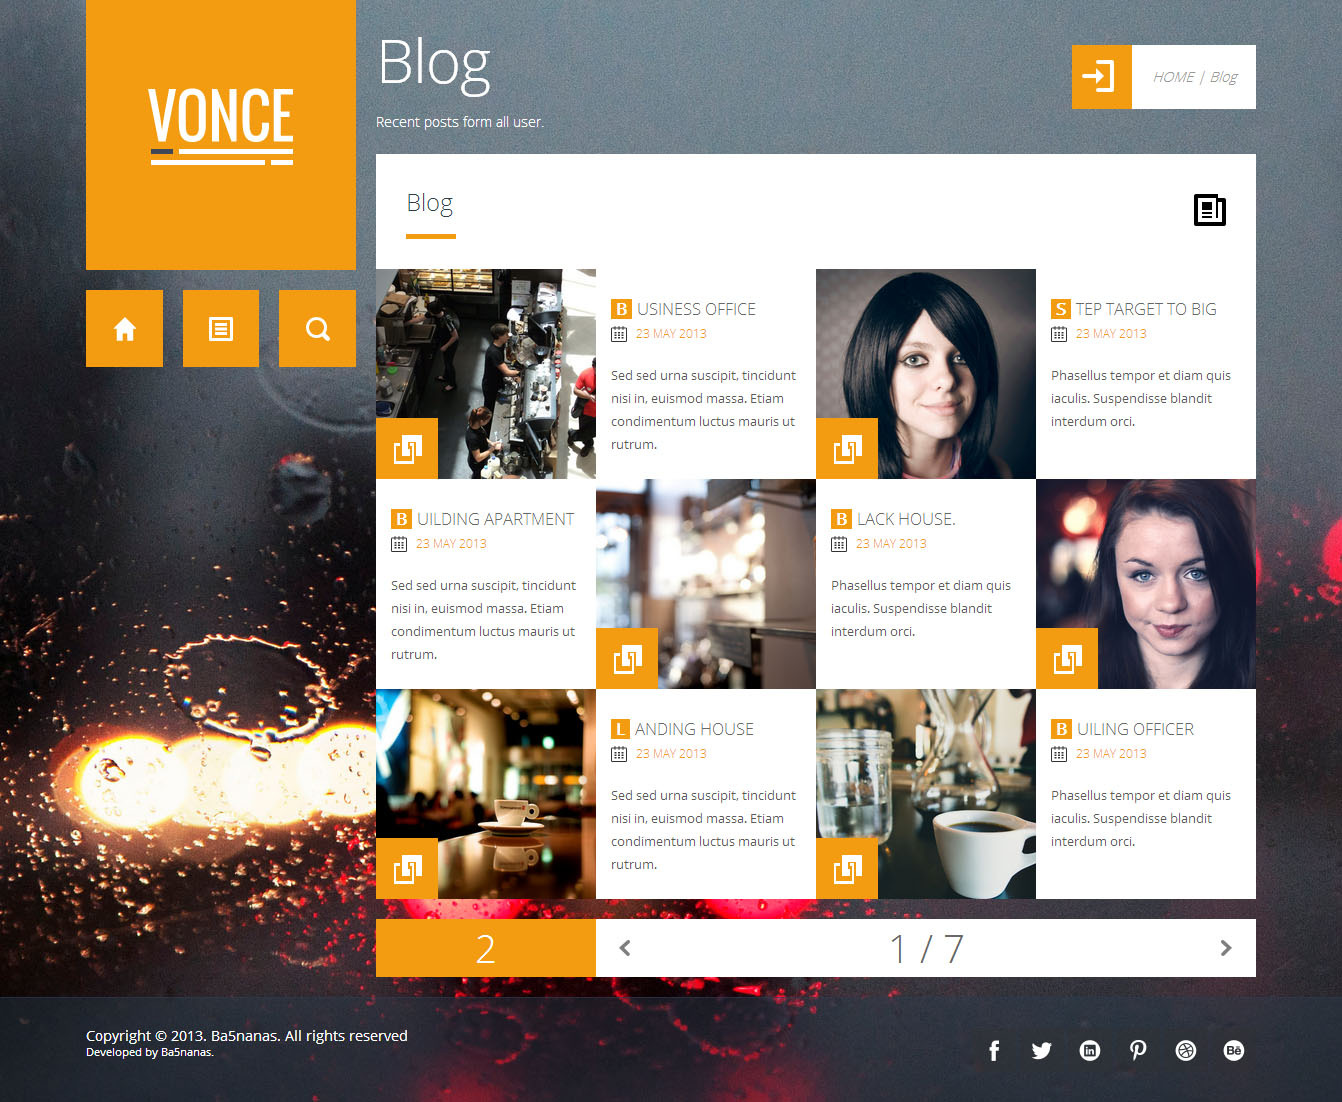 Vonce - This's blog page, Top right it's breadcrumbs. :)